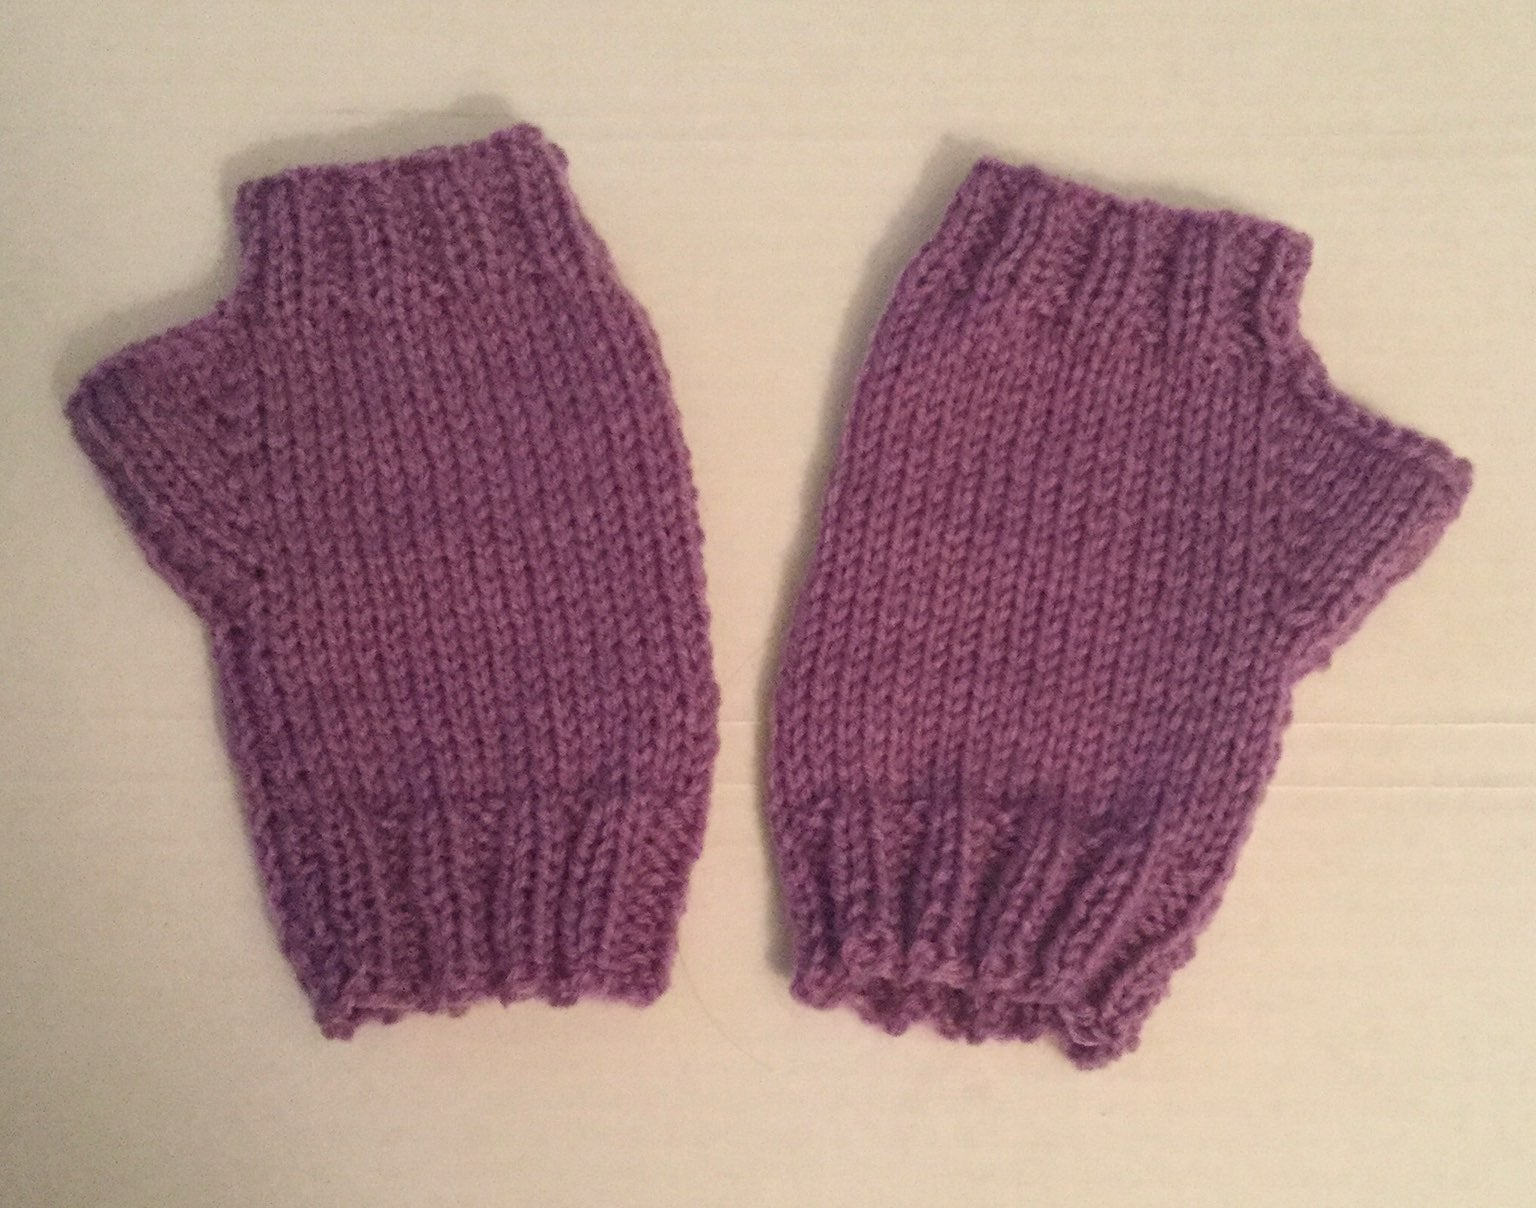 Small/ medium fingerless hand mitts, adu